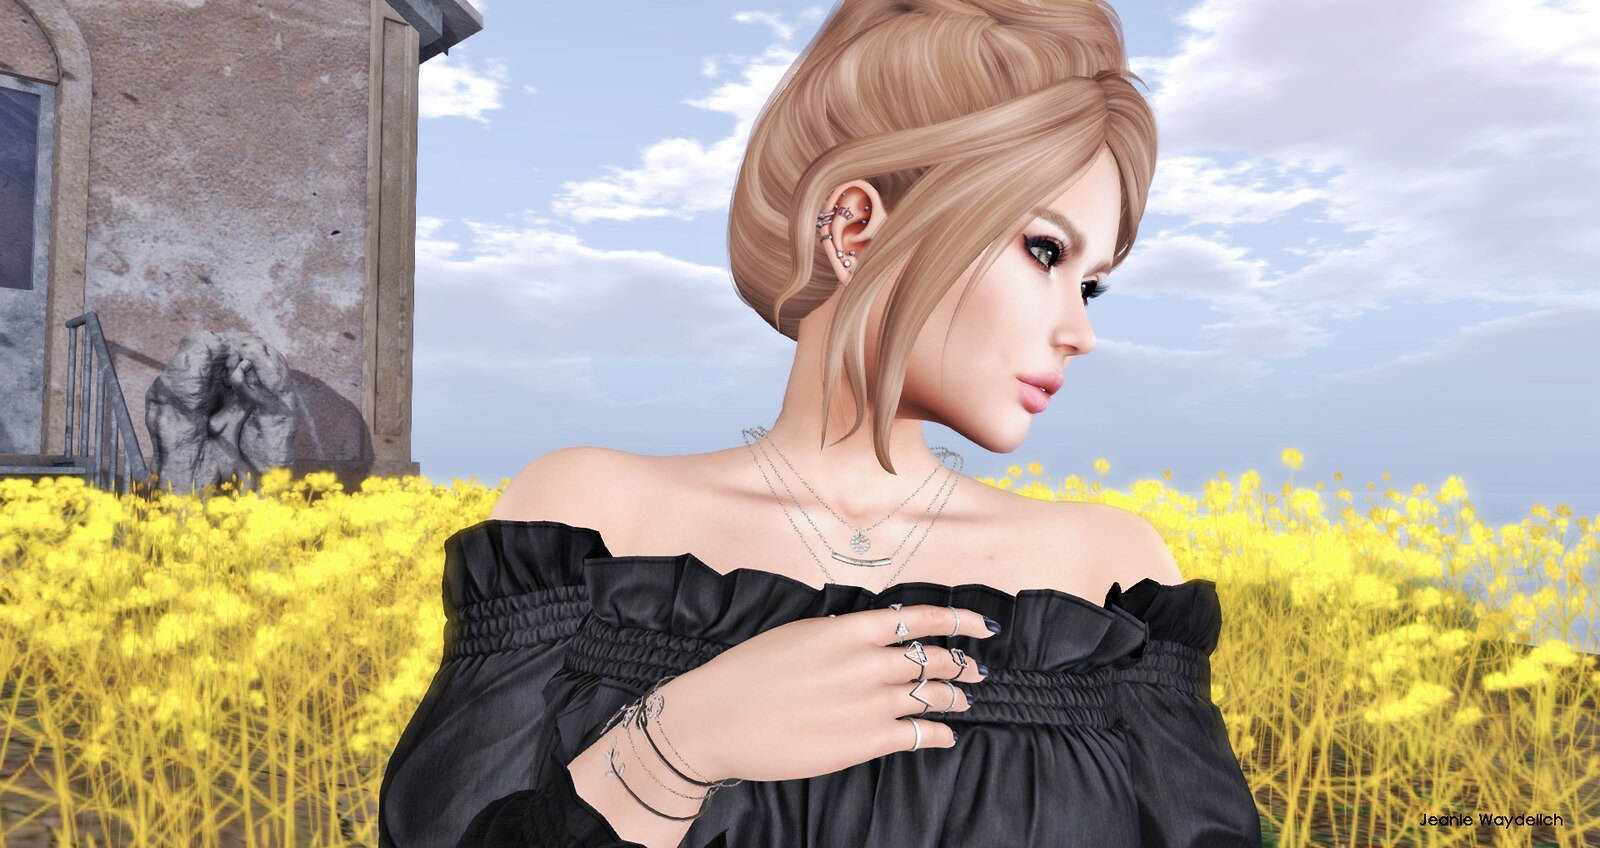 LOTD 843 - Sweet Sisterhood